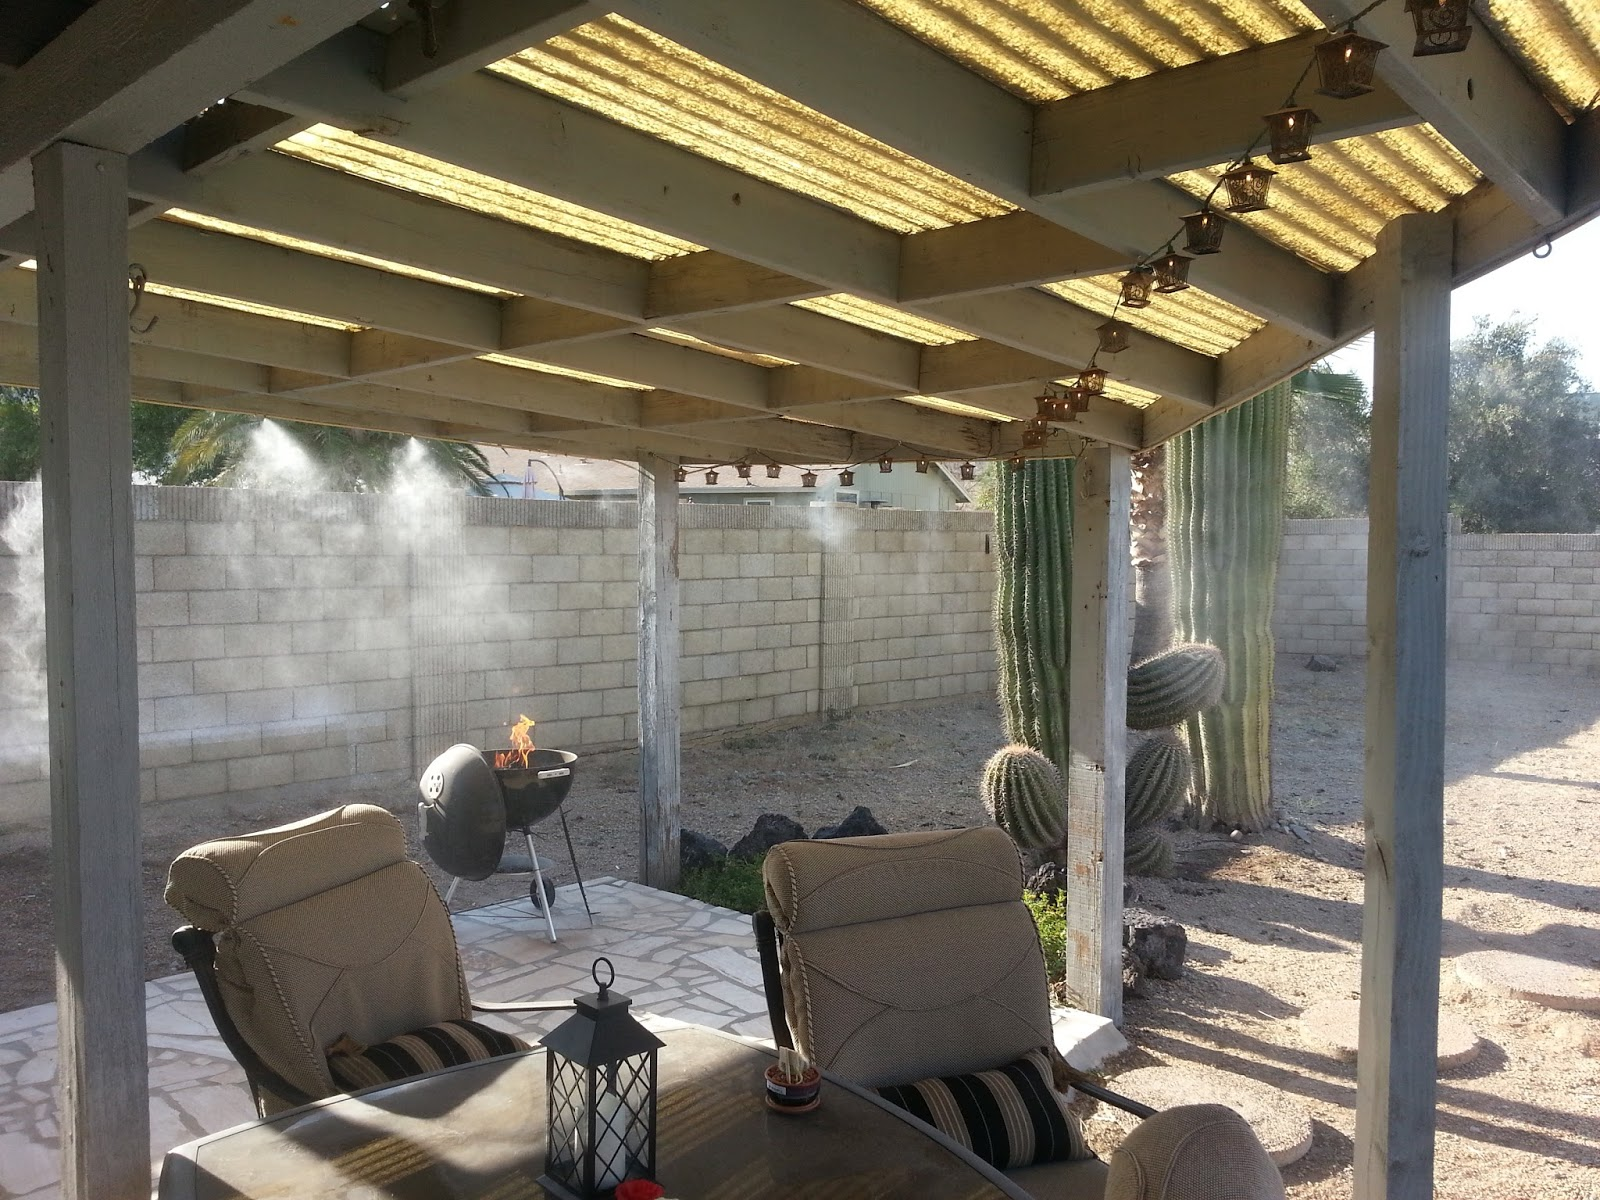 Orbit Misting System : Az diy guy s projects in case you mist it installing a